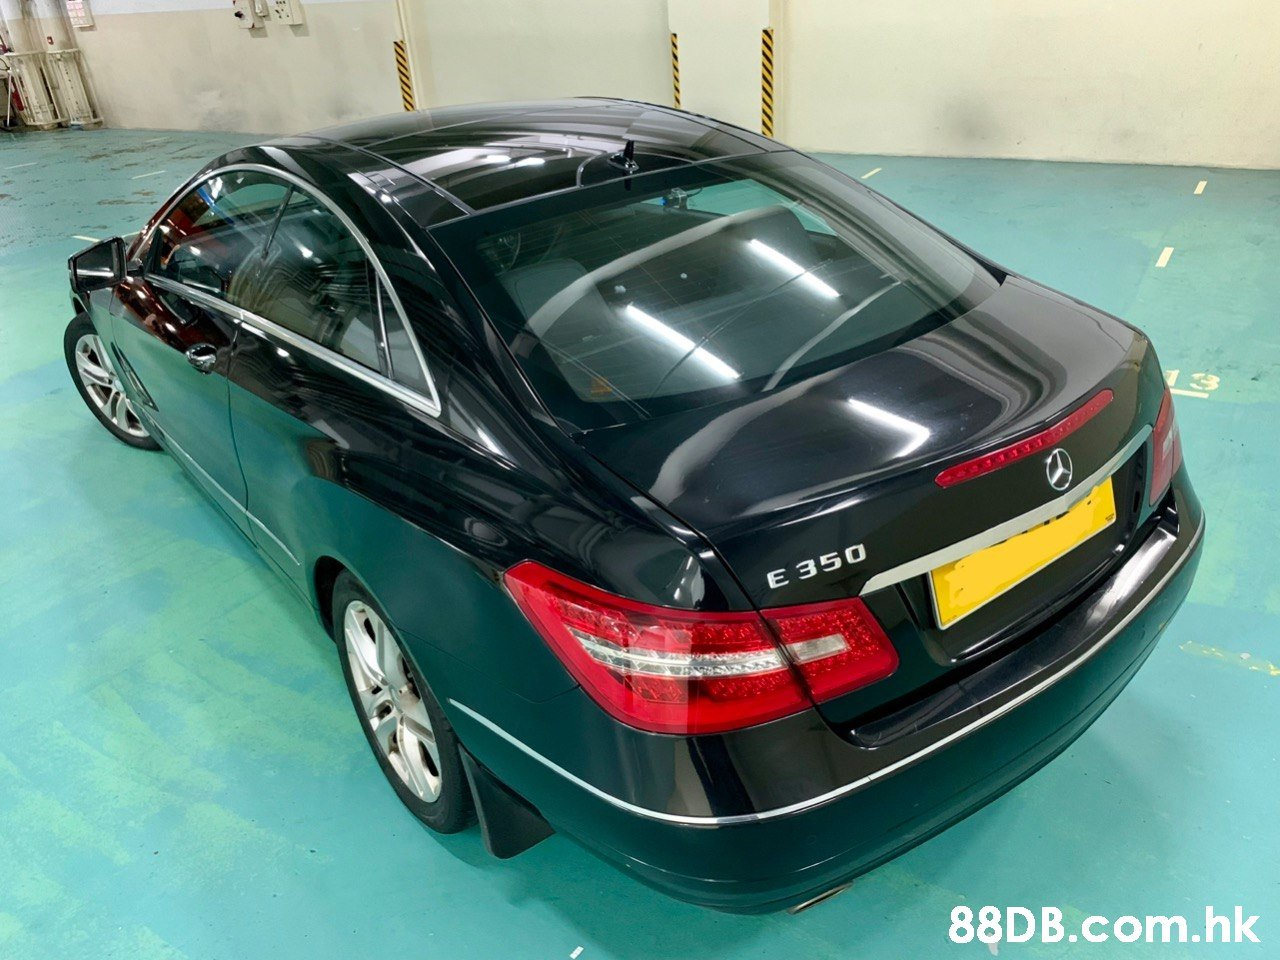 E 350 .hk  Land vehicle,Vehicle,Car,Mercedes-benz w212,Motor vehicle